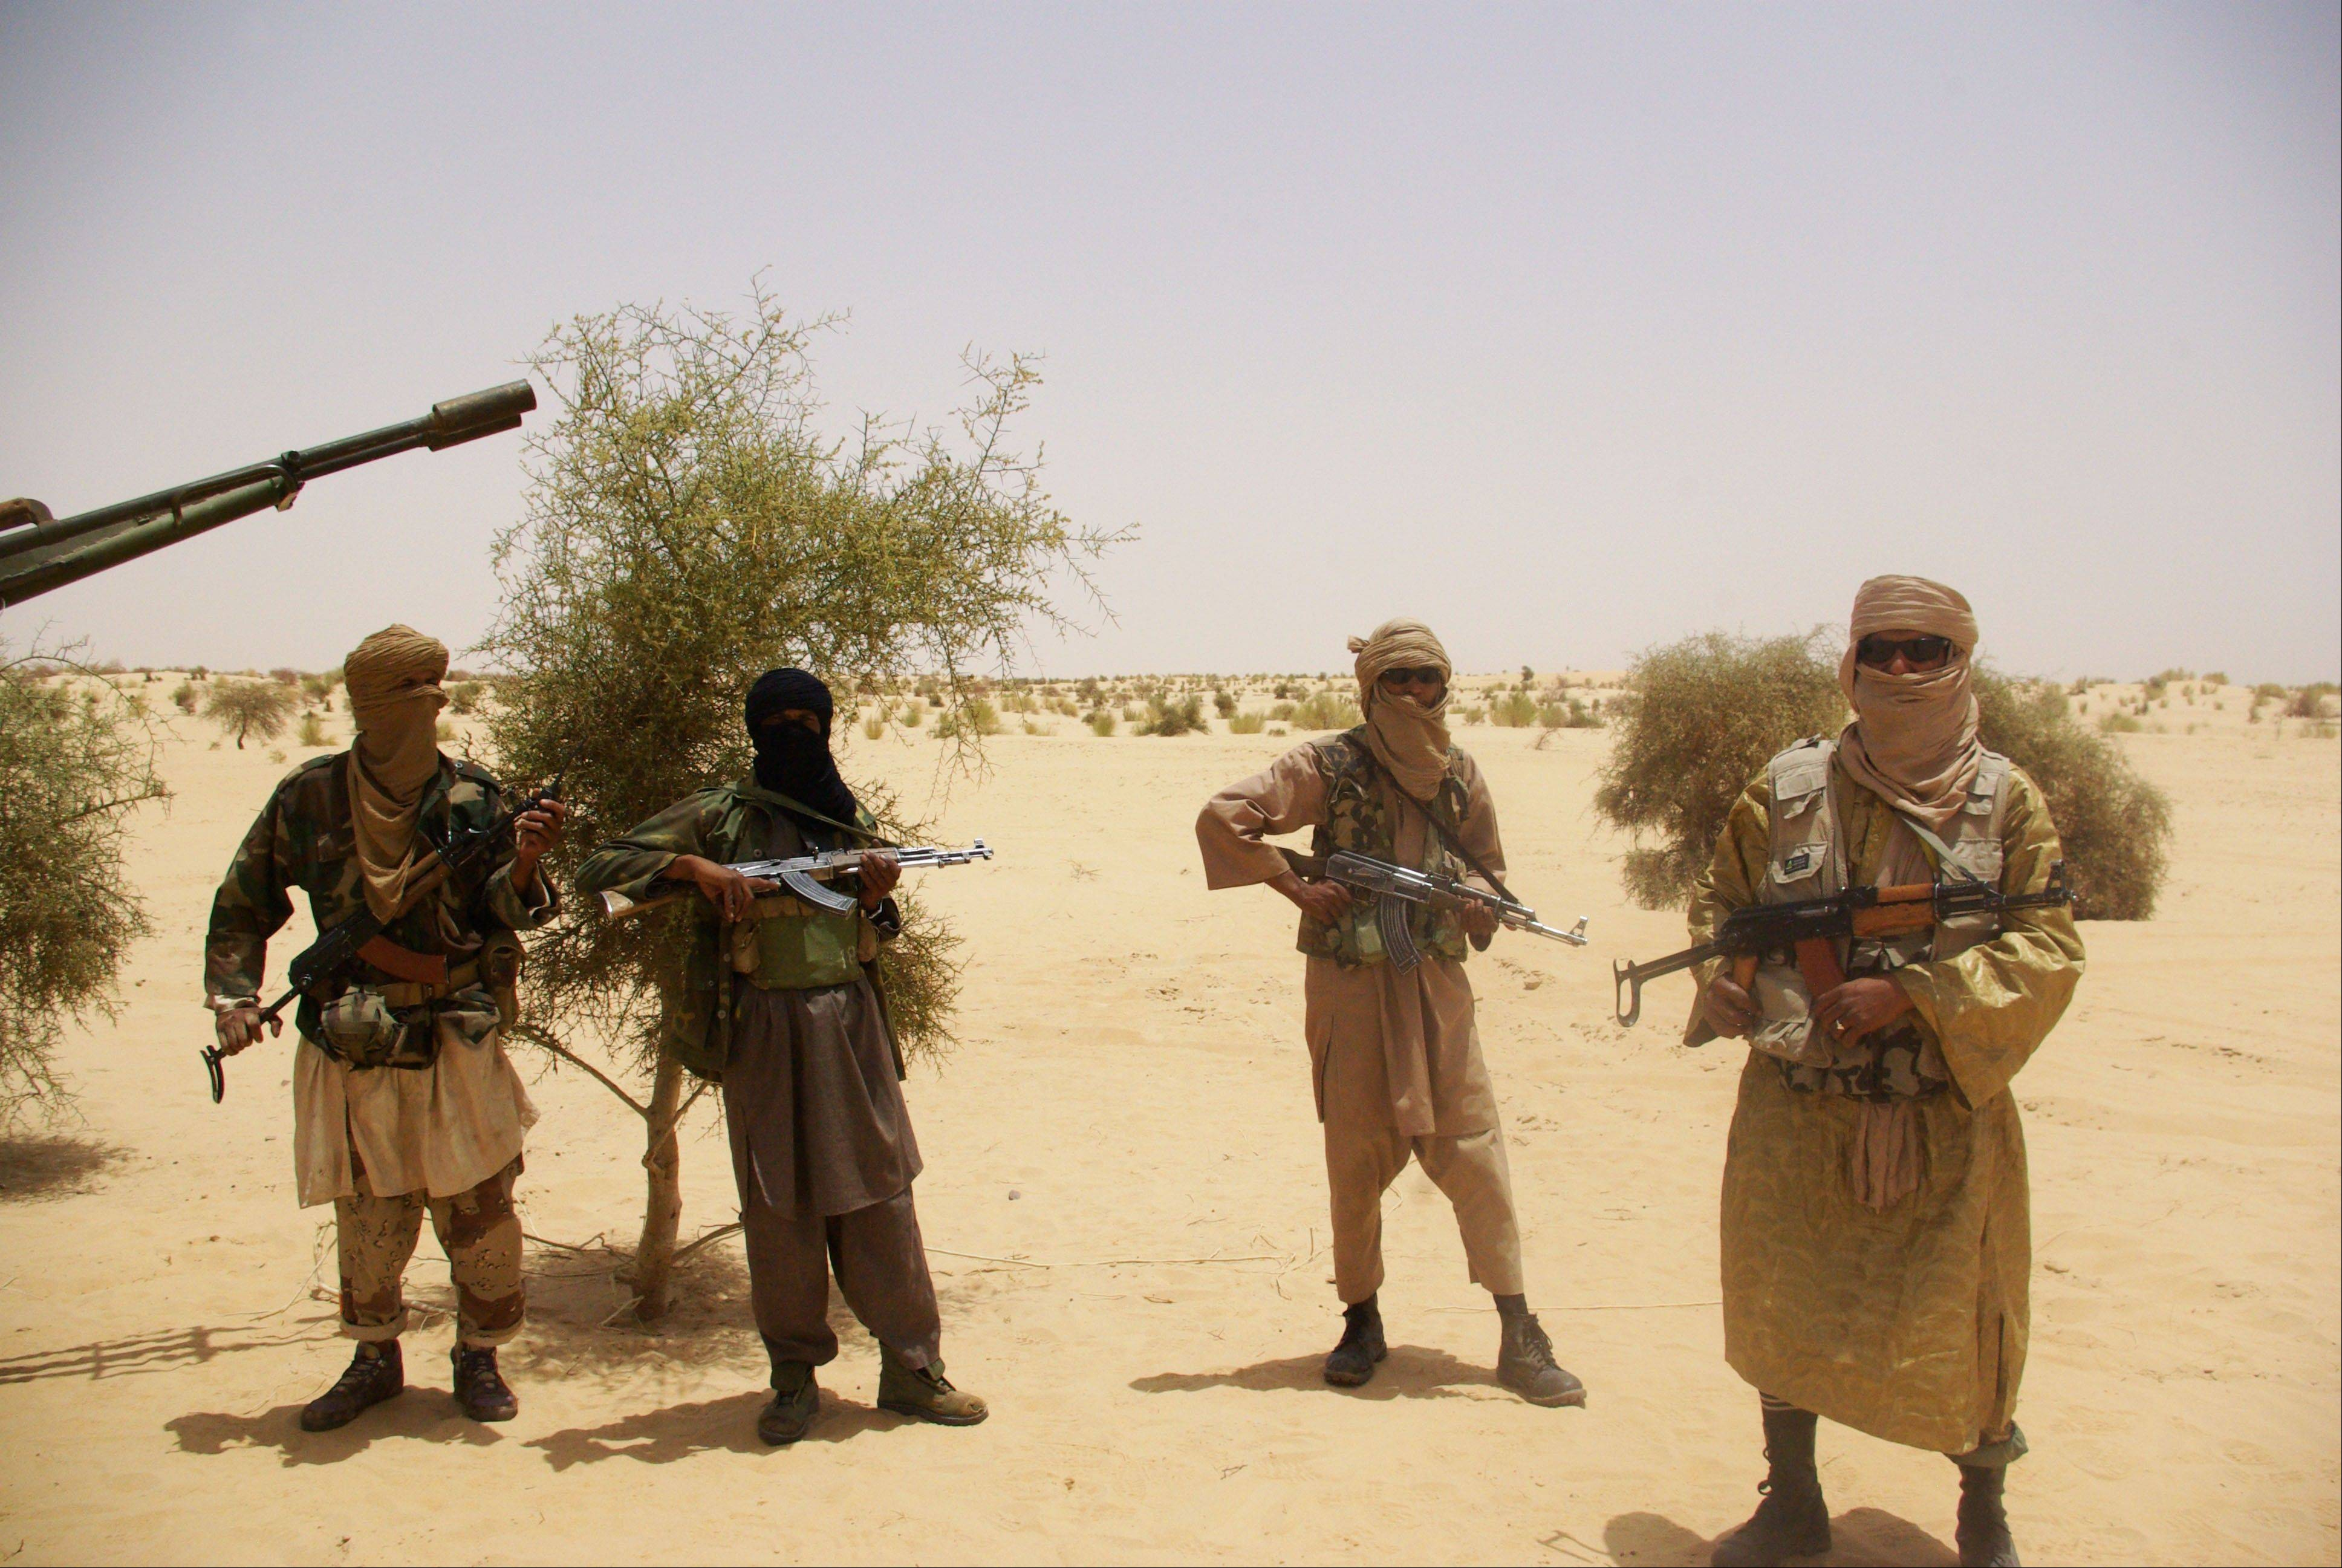 Associated Press/April 24, 2012 Fighters from Islamist group Ansar Dine stand guard during a hostage handover in the desert outside Timbuktu, Mali.